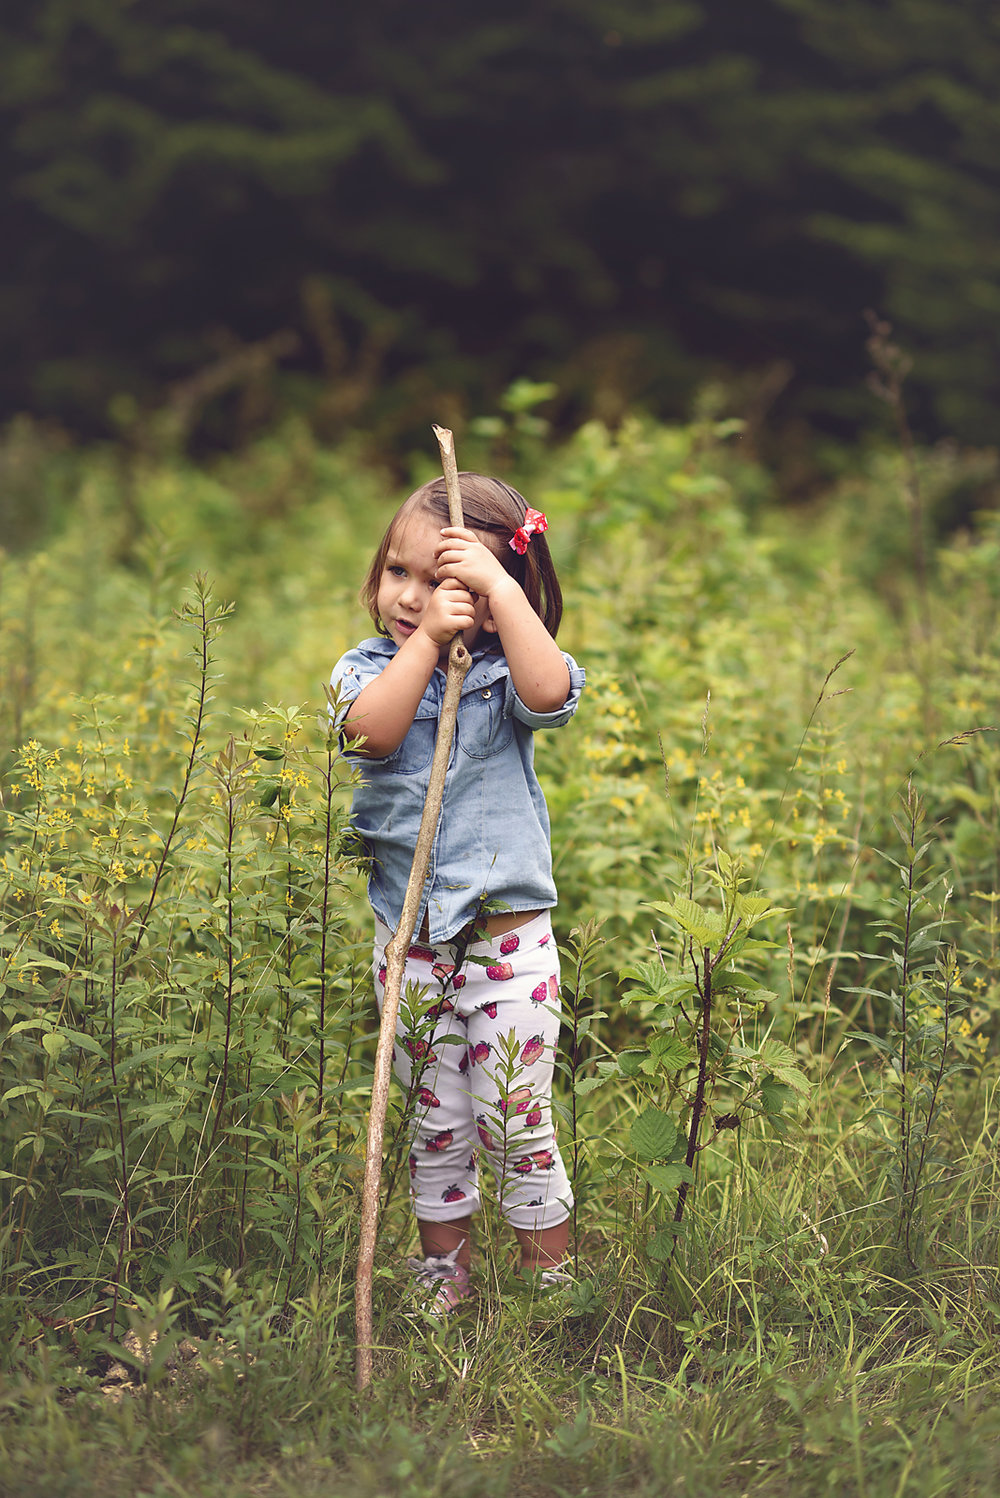 Kids Lifestyle Photos - The 95 Days of Summer Challenge - Joanna Moore Photography